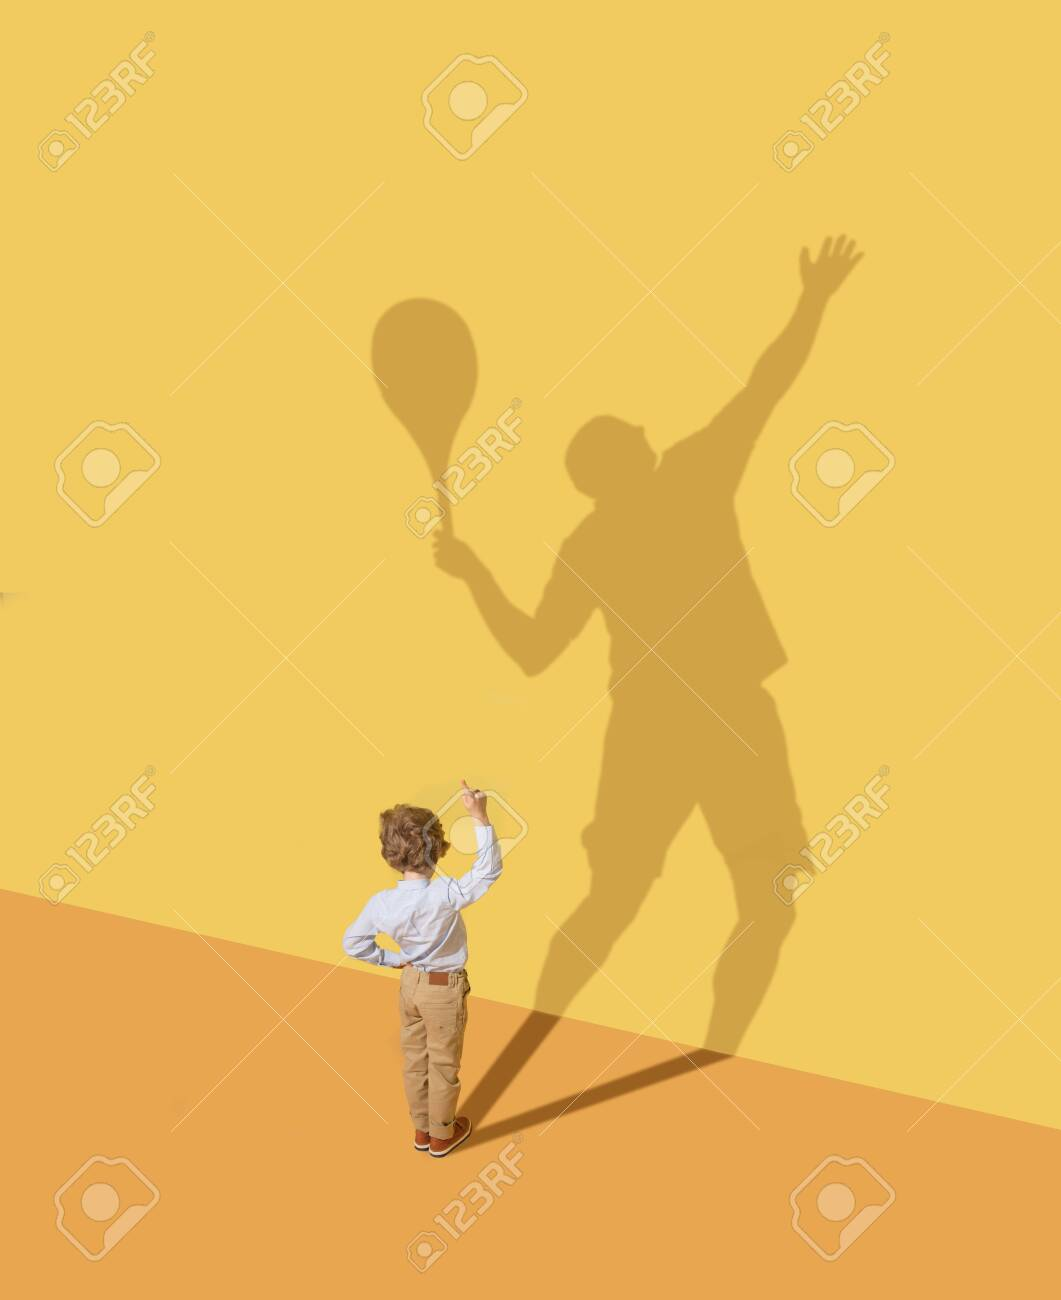 Getting best result in team. Childhood and dream concept. Conceptual image with child and shadow on the yellow studio wall. Little boy want to become tennis player and to build a sport career. - 121063406